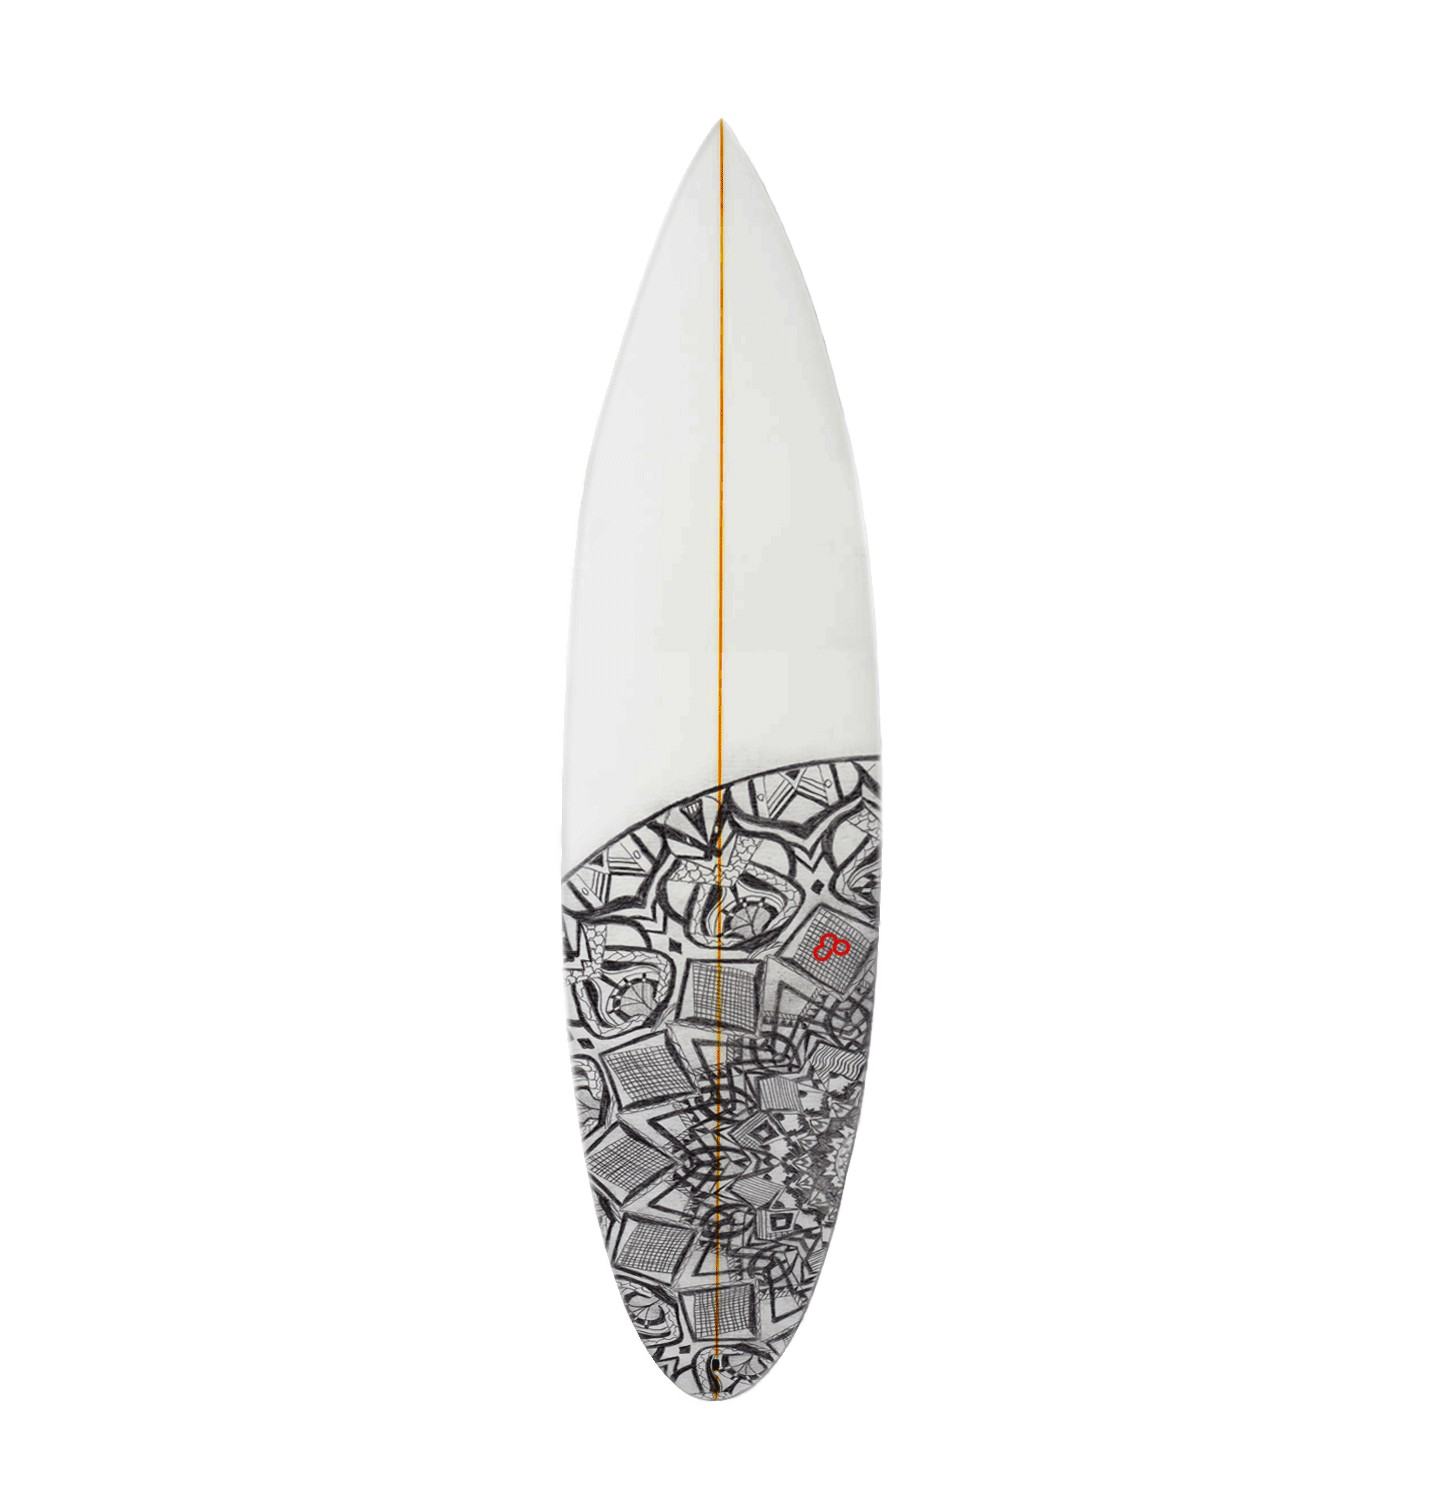 Drawn surfboard Hand your design drawn surfboard